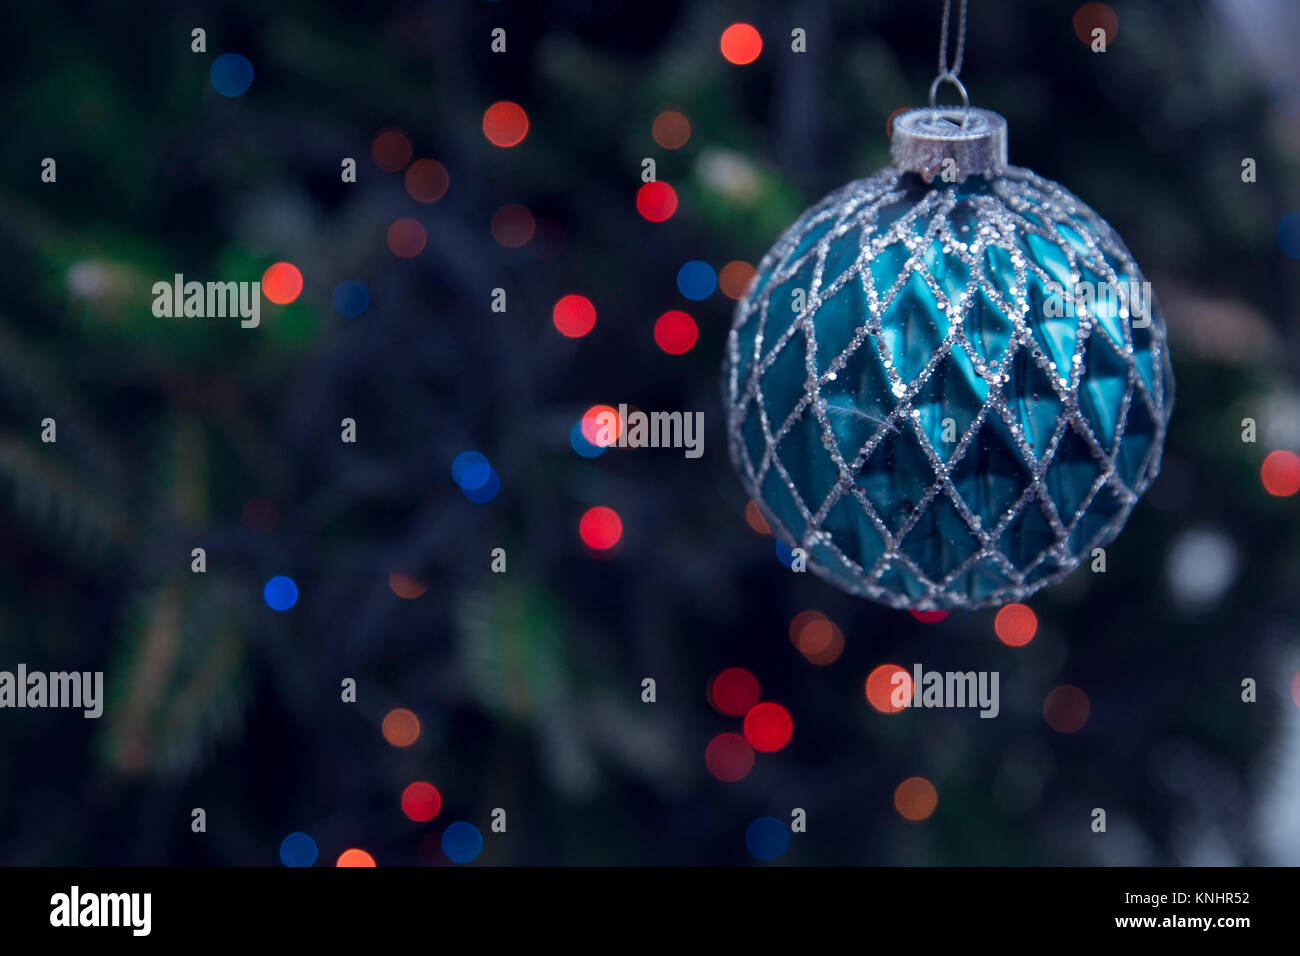 New Year bauble against dark background - Stock Image